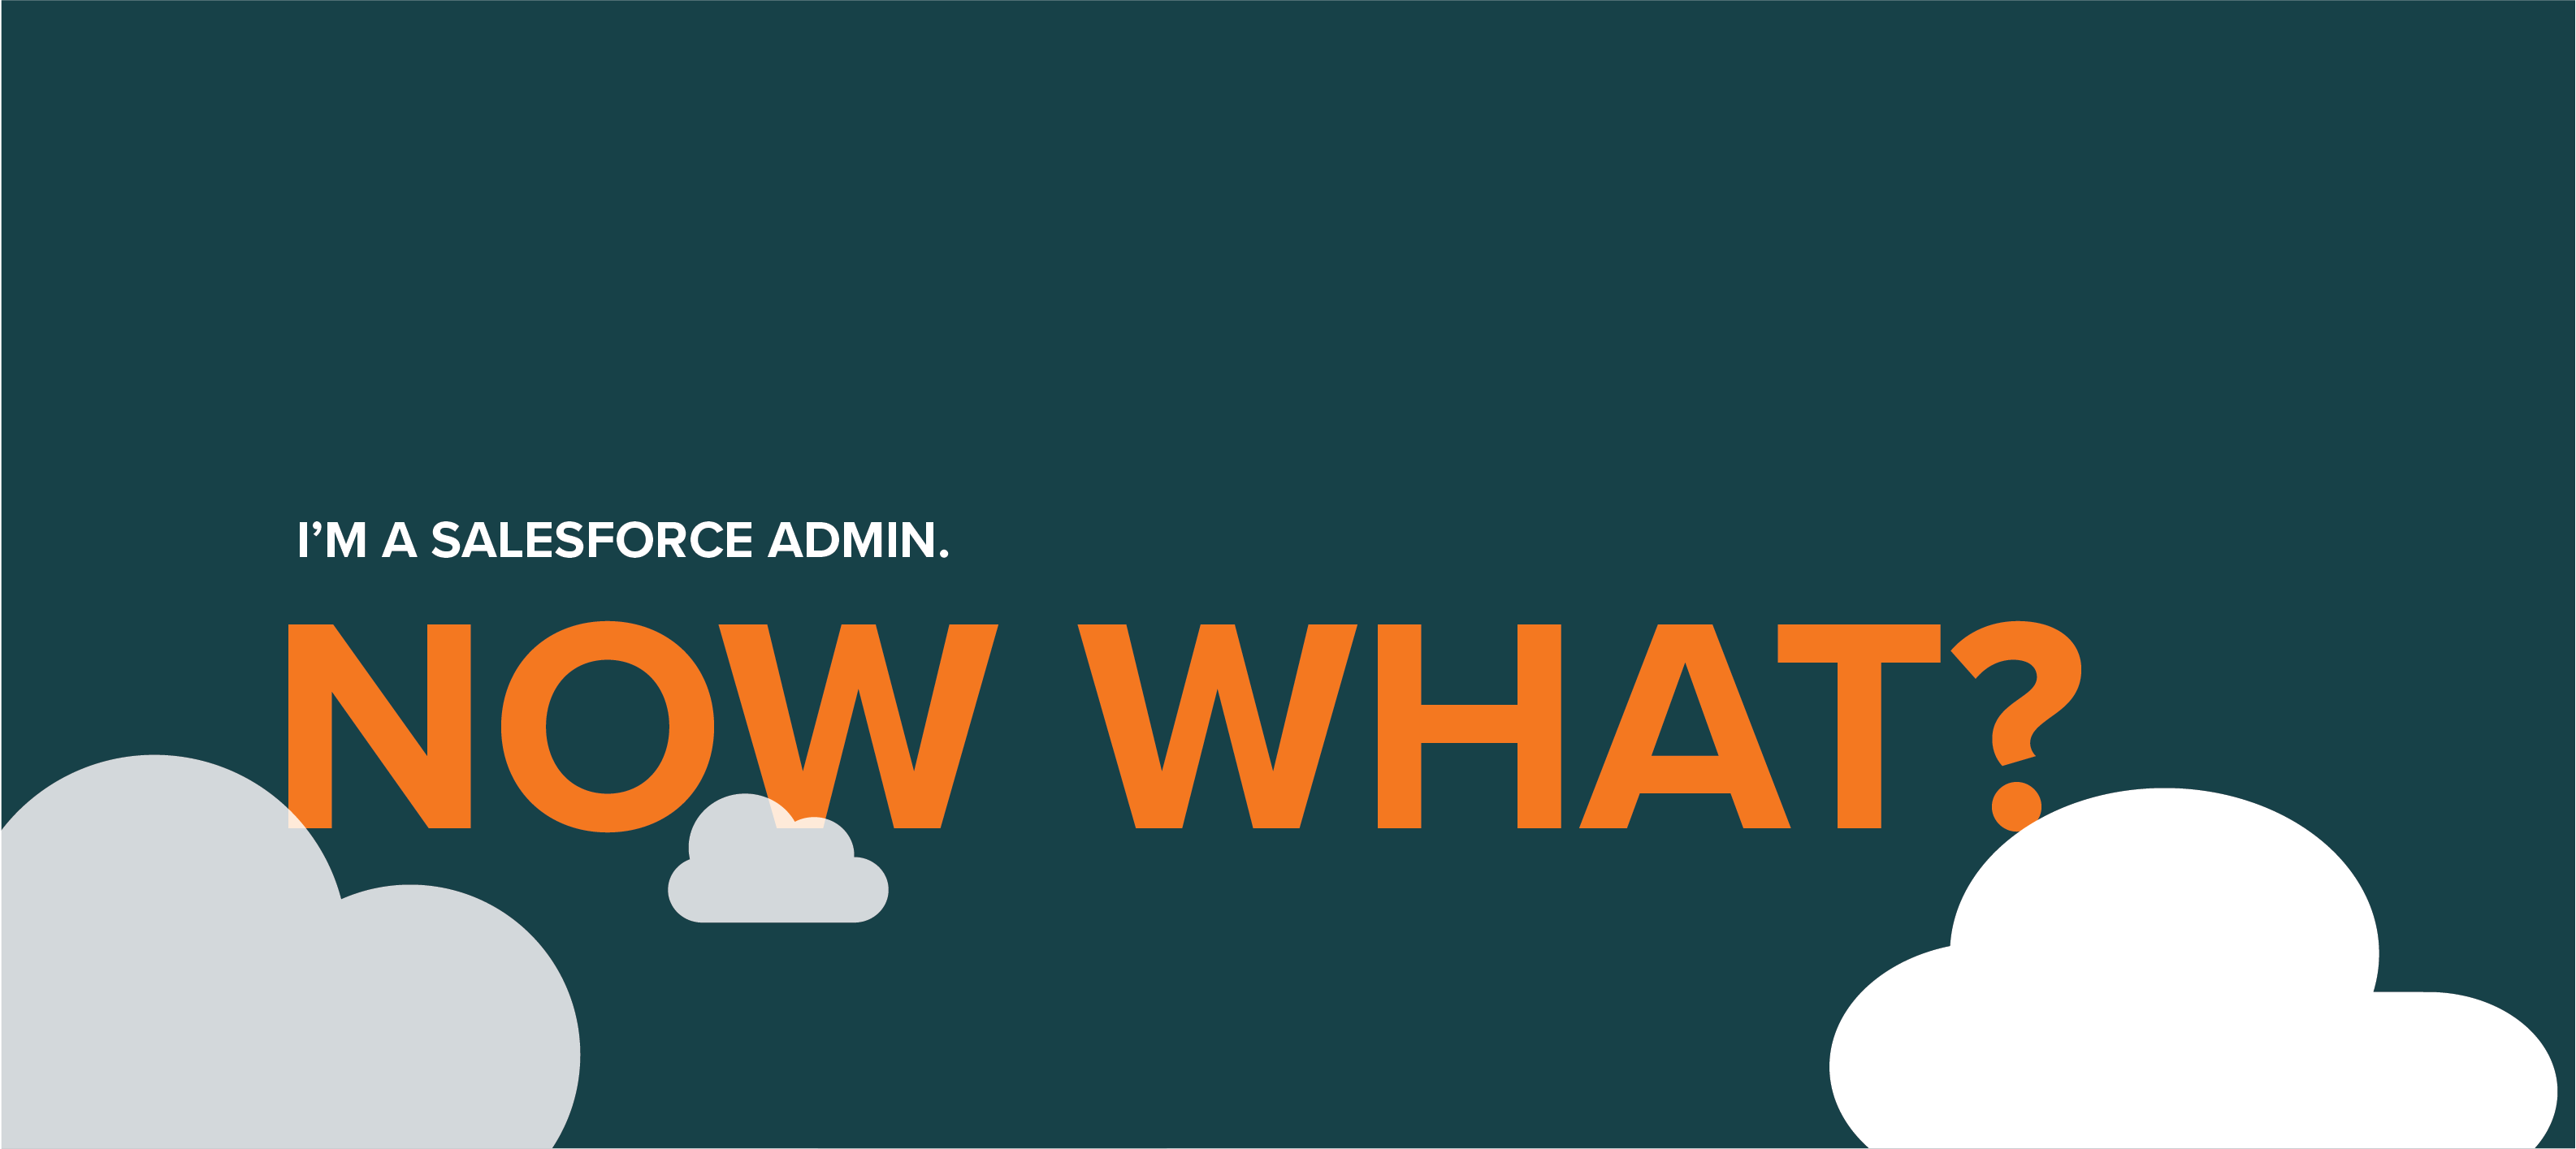 So You're A New Salesforce Admin     What's Next? - Statêra